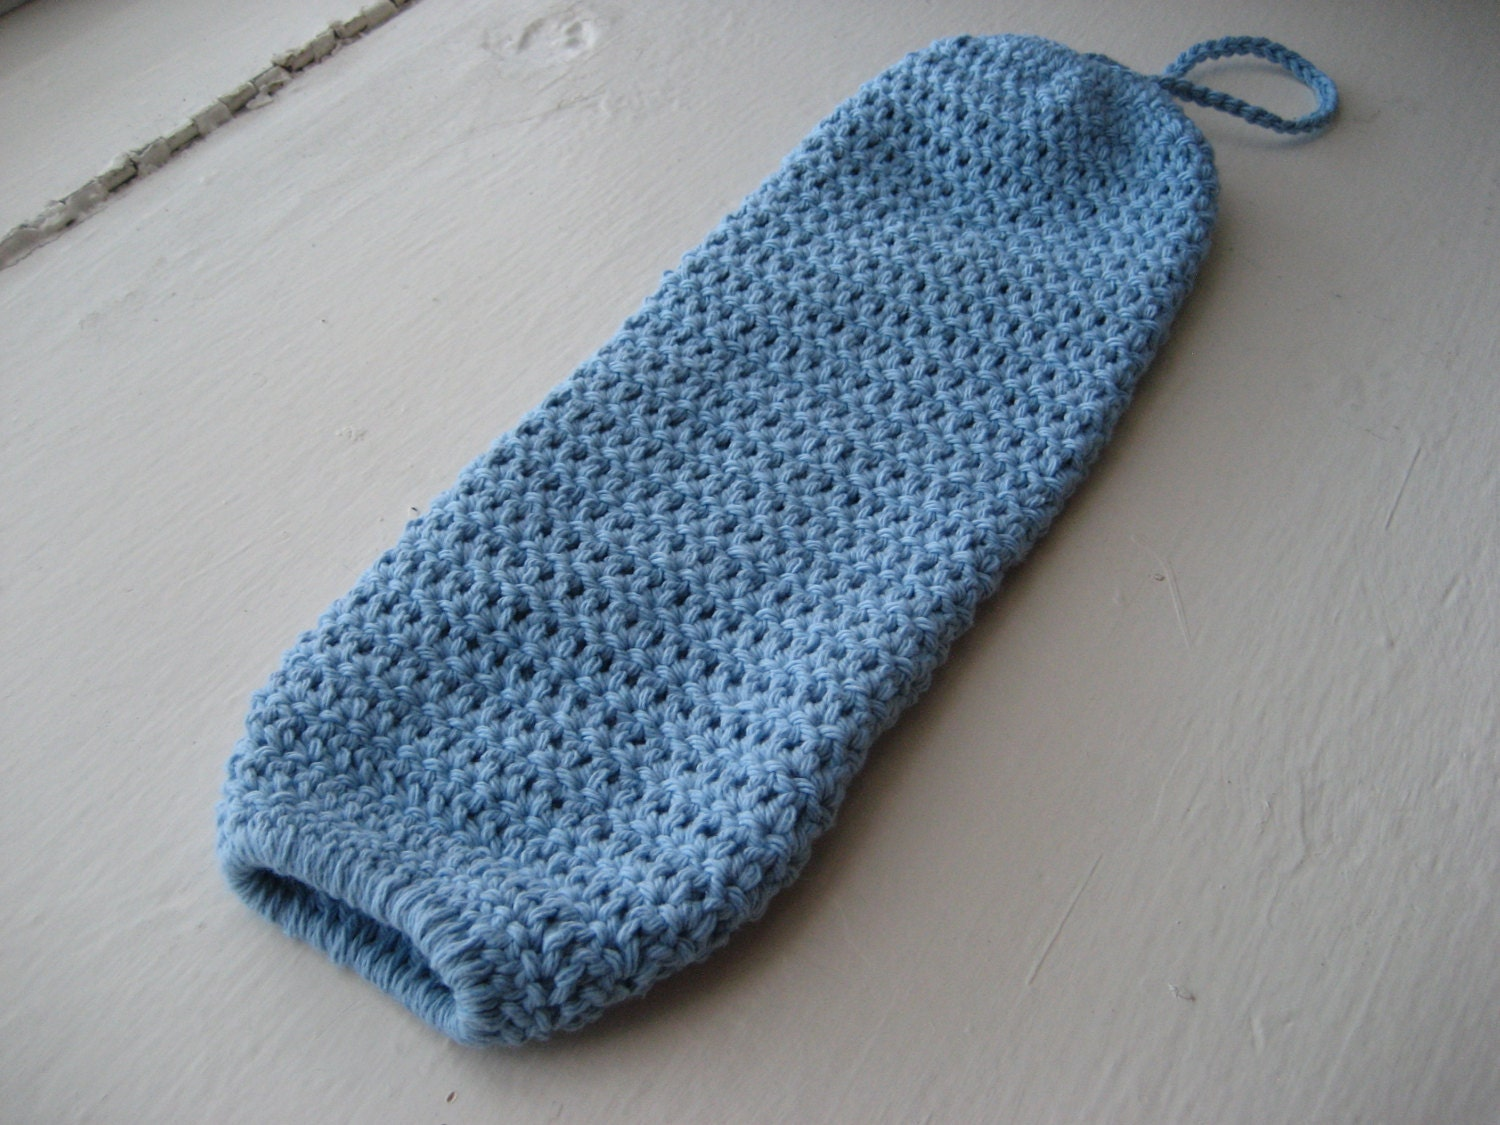 Crocheted Hanging Grocery Bag Holder Light Blue